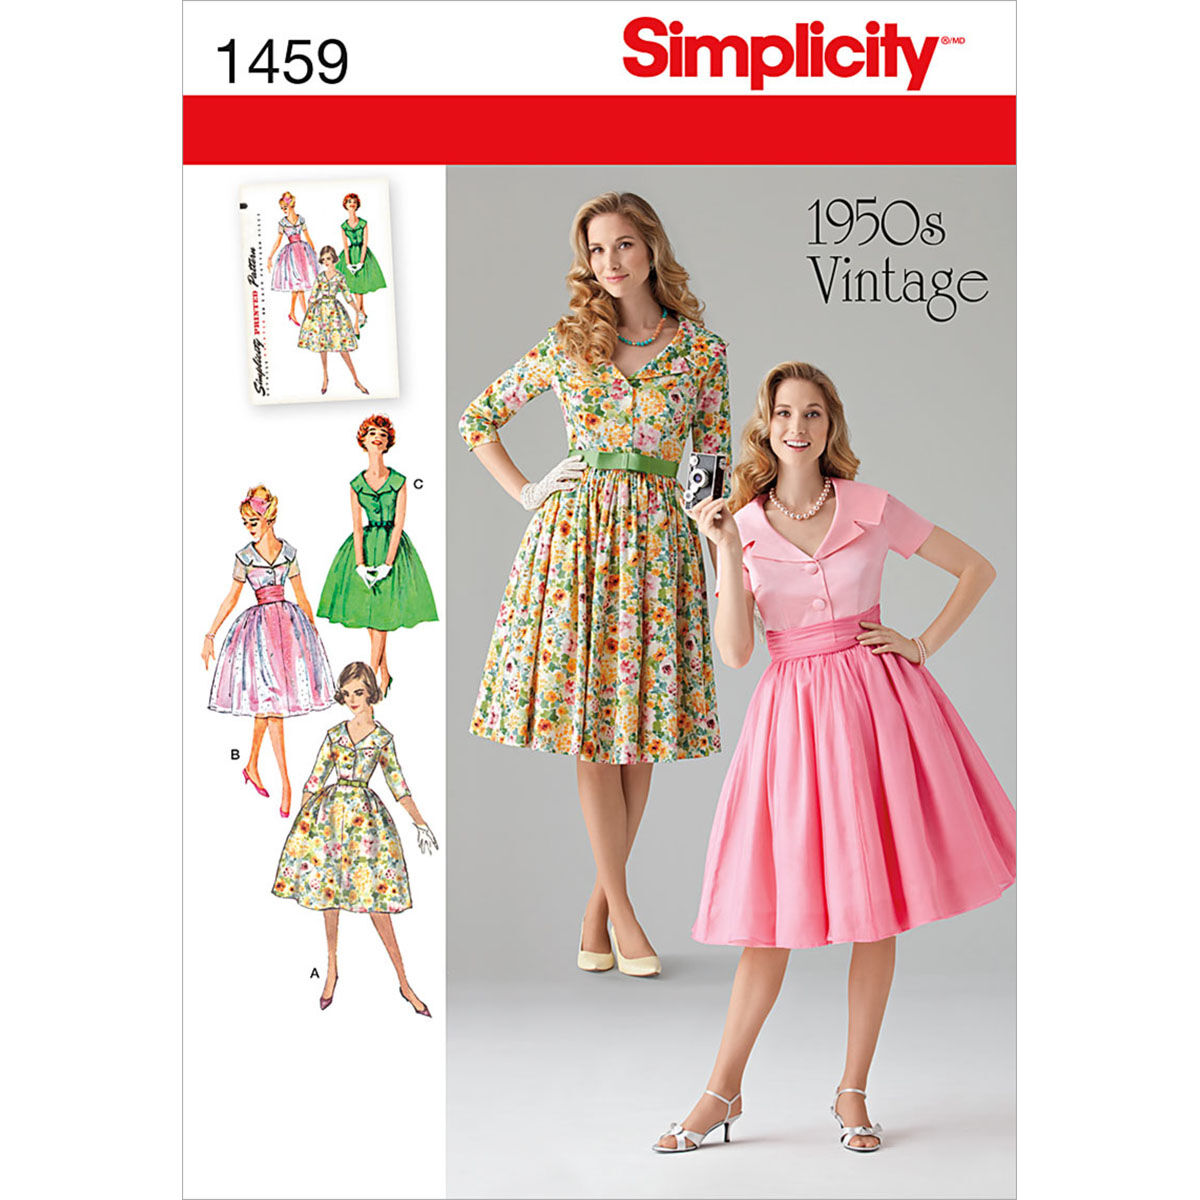 1950s Sewing Patterns | Dresses, Skirts, Tops, Mens Simplicity Pattern 1459K5 8 - 10 - 12 - 14 - Misses Dresses $11.37 AT vintagedancer.com